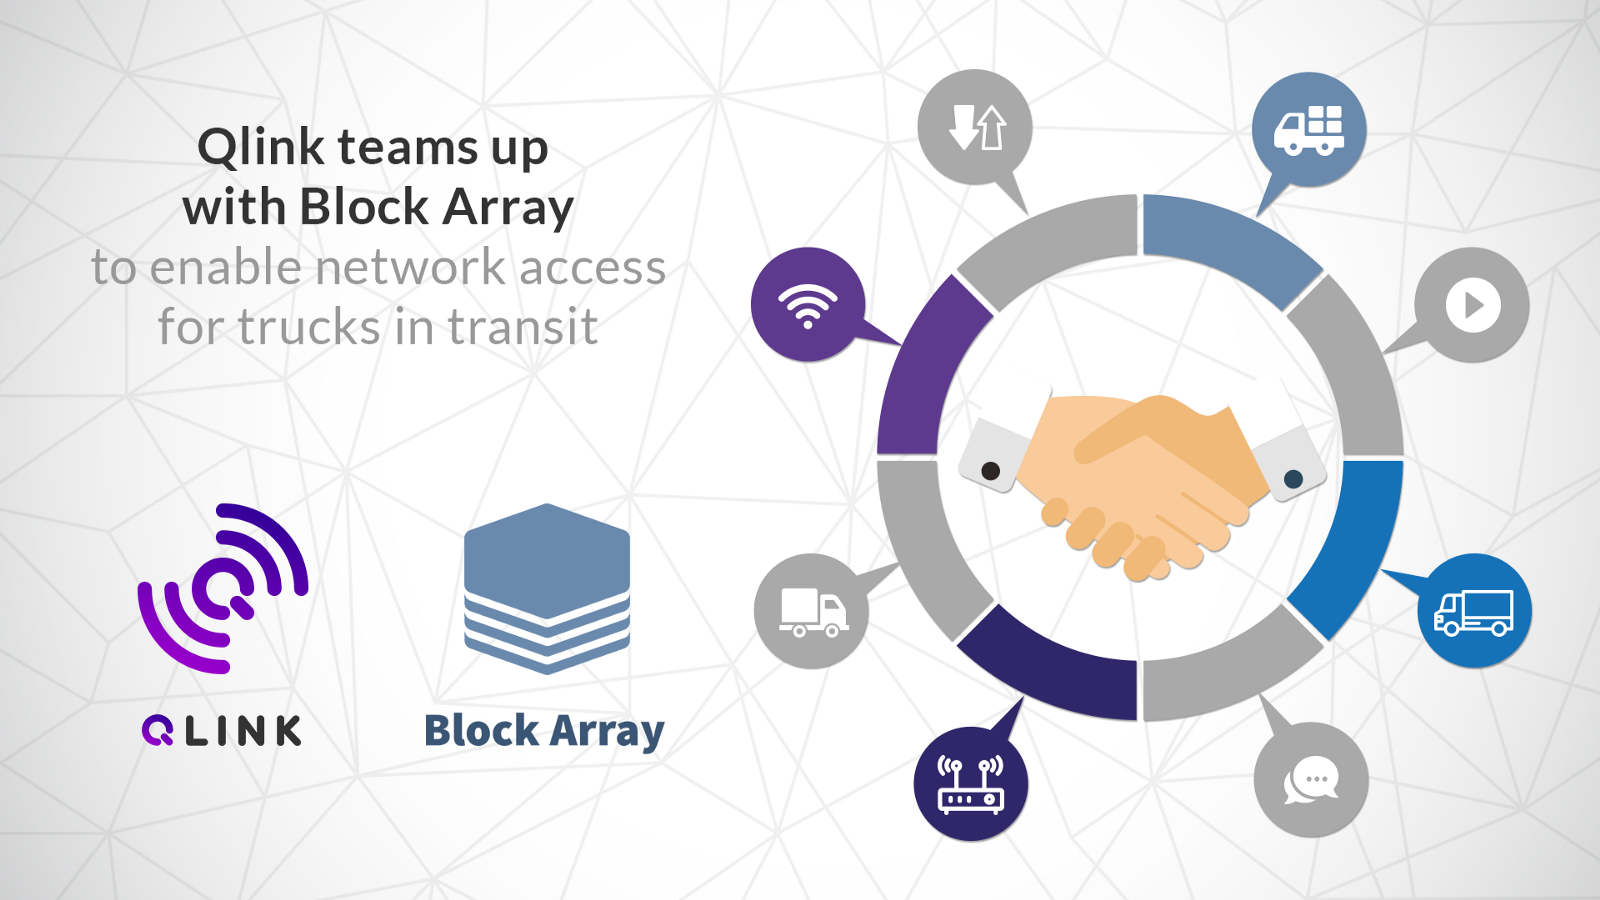 qlink teams up with block array to enable network access for trucks Qlink Legacy 250 singapore \u2014 january, 2018 \u2014 qlink and block array today announced that they have signed a memorandum of understanding (mou) to work together